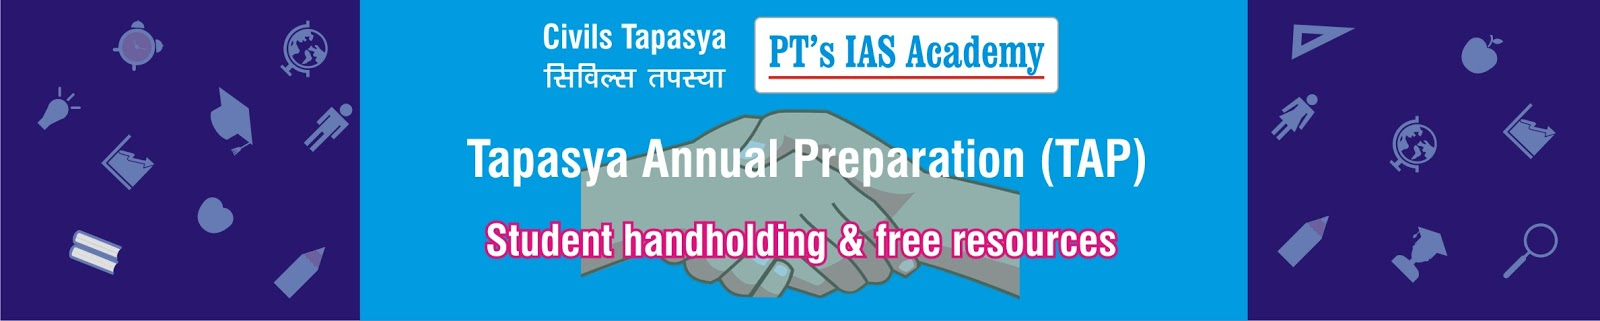 coaching for civil services, free IAS coaching